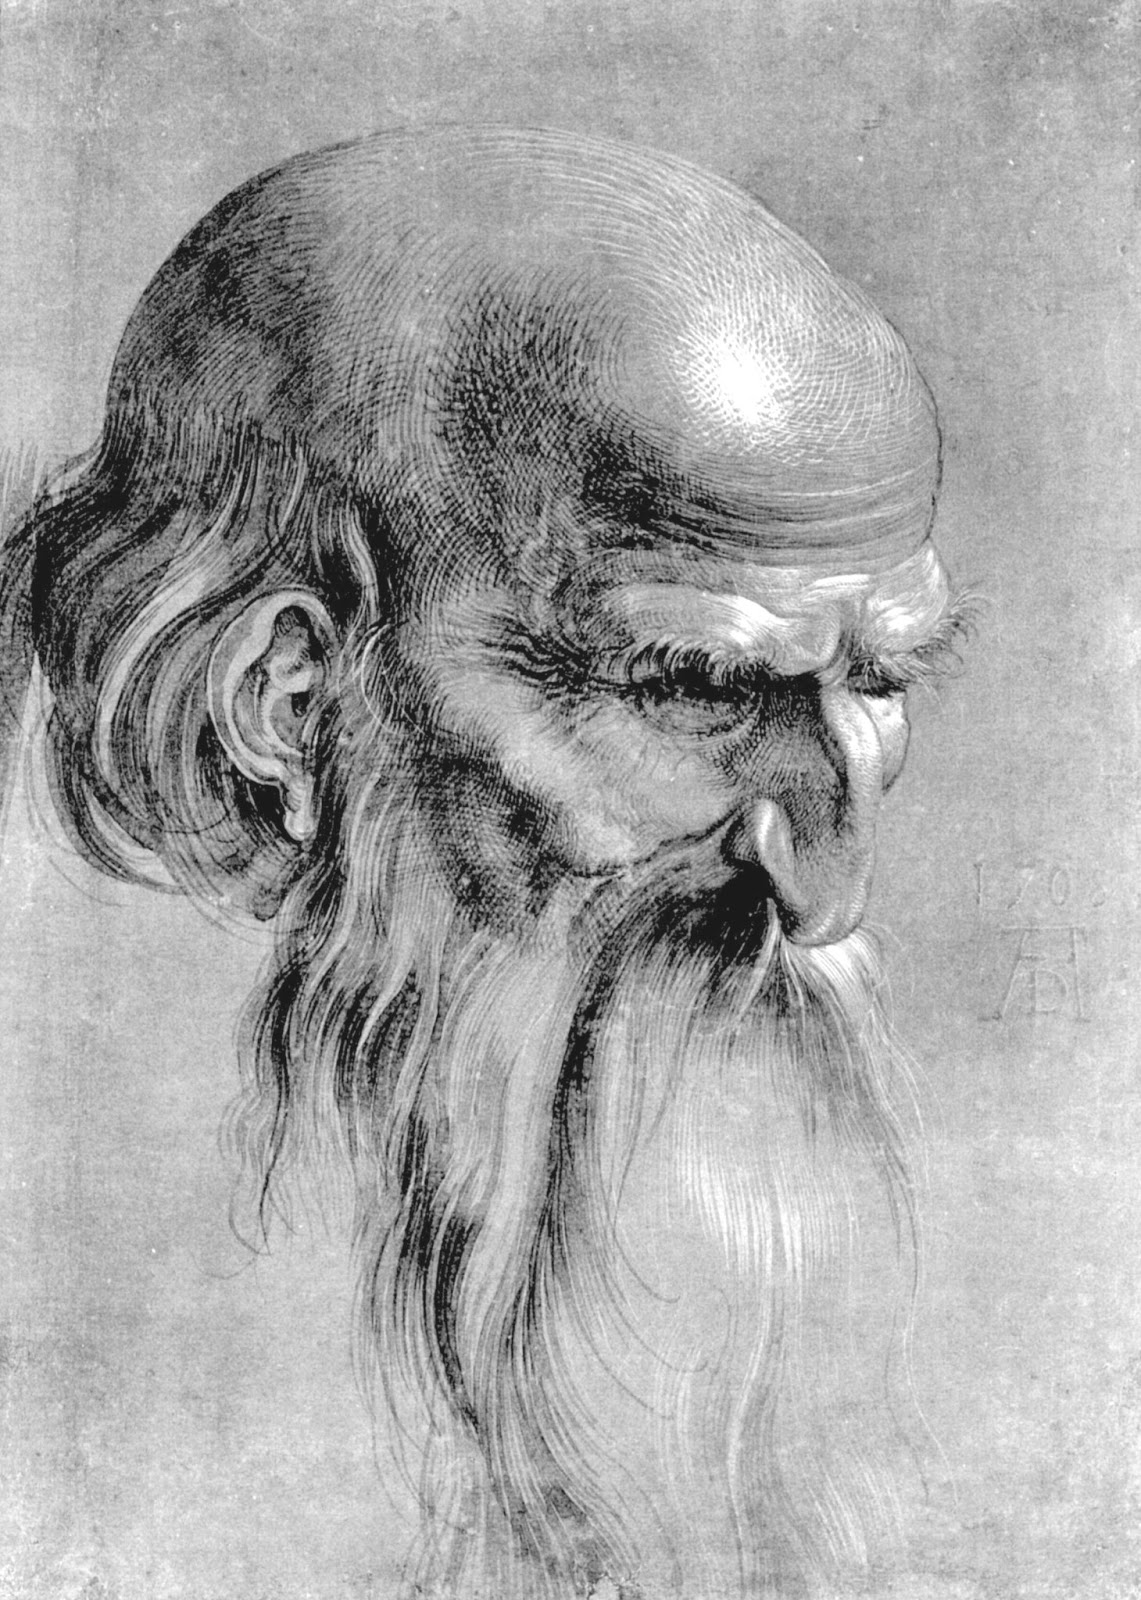 a biography and life work of albrecht durer a german renaisance artist The german painter and graphic artist albrecht dürer introduced the achievements of the italian renaissance into northern european art the renaissance was a cultural revolution that began in italy during the mid-1300s.